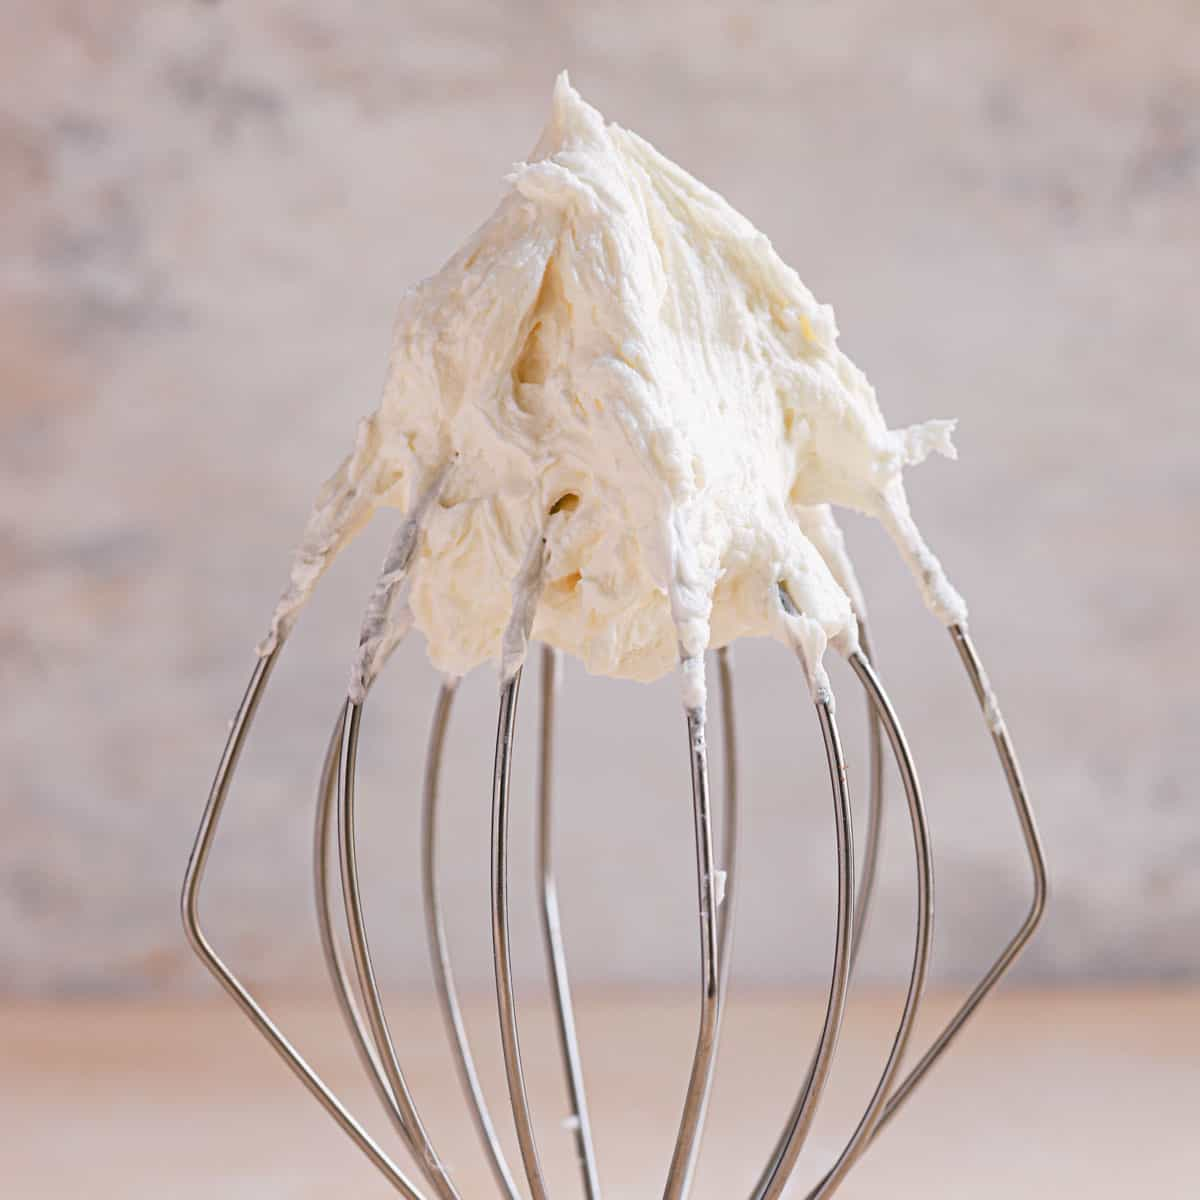 A square photo of vanilla buttercream frosting on a wire whisk.